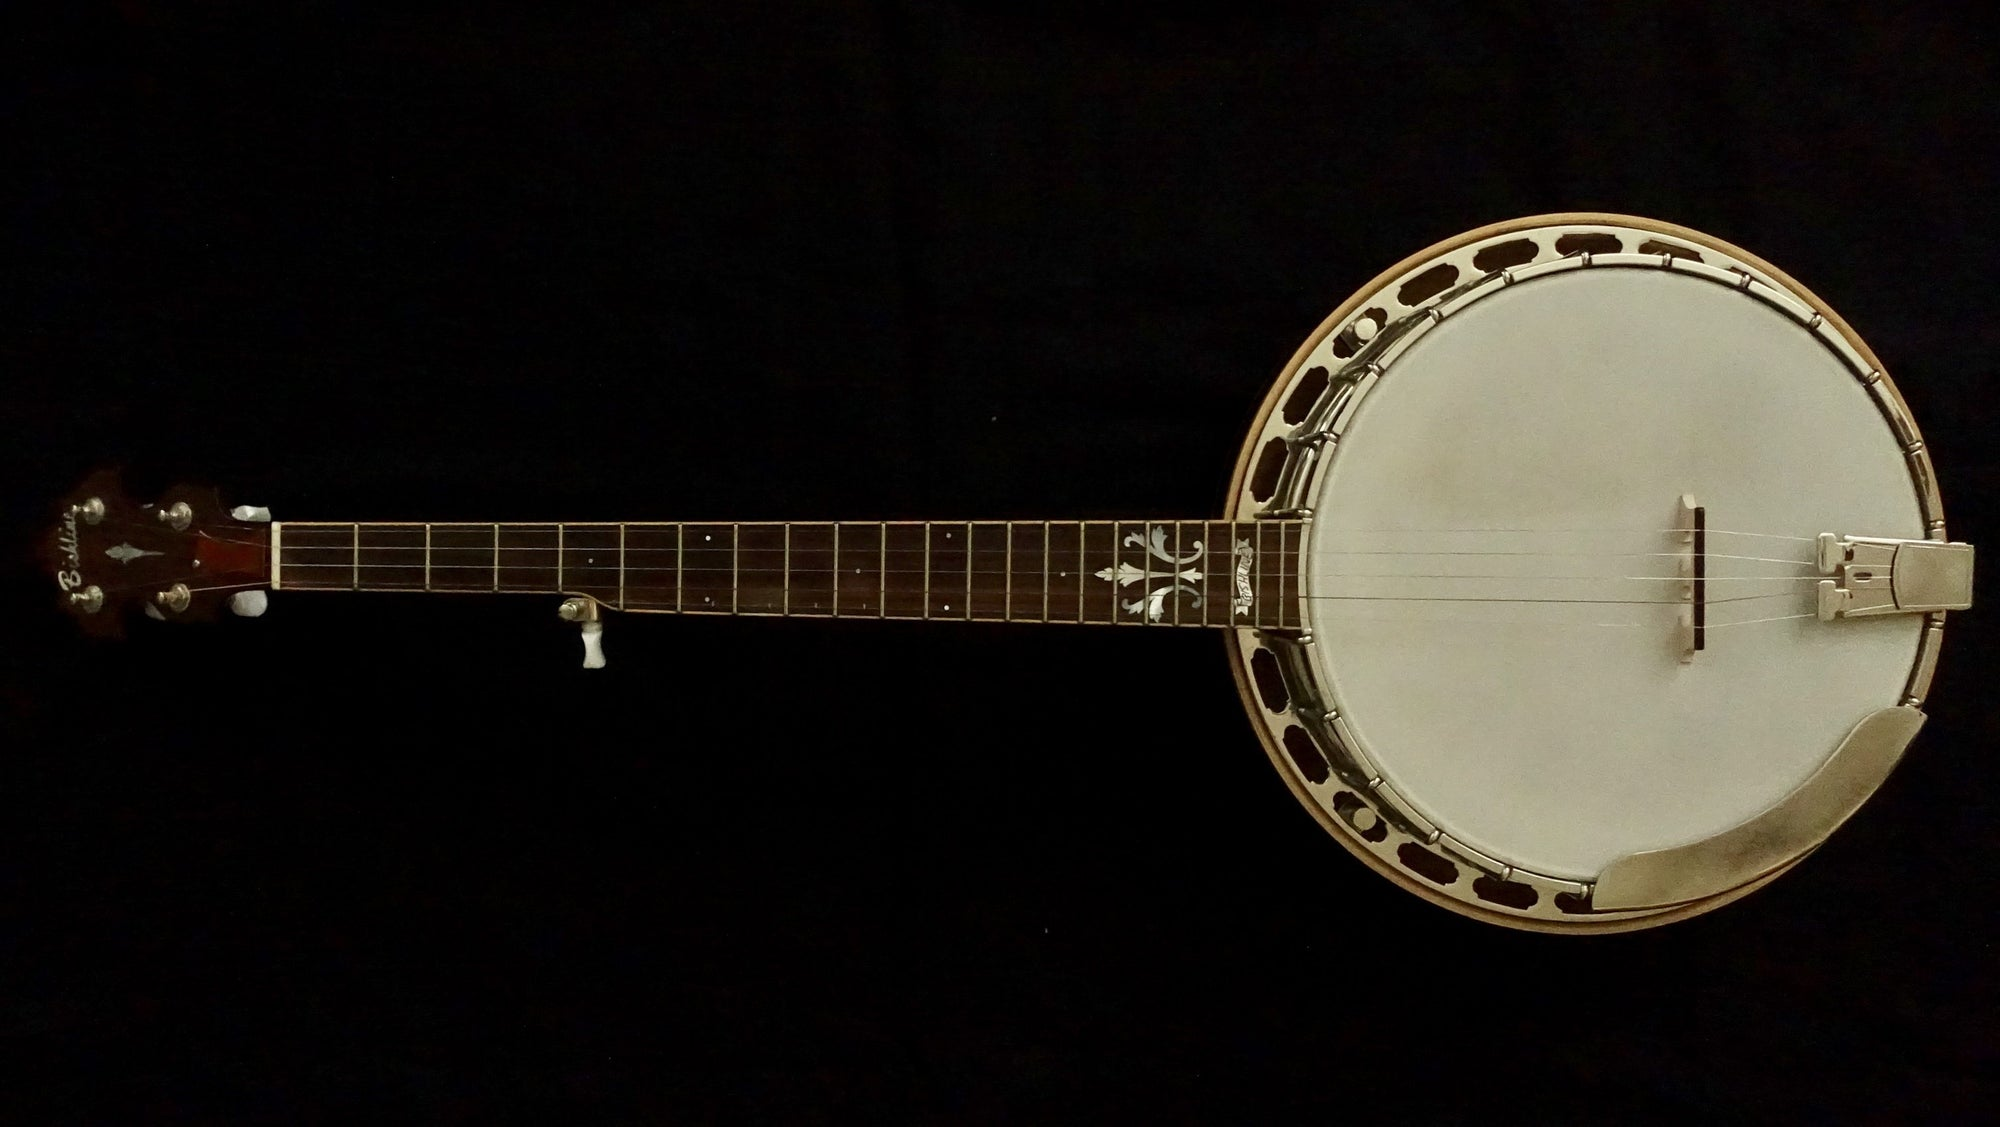 Bishline Heirloom - Used - Banjo Studio